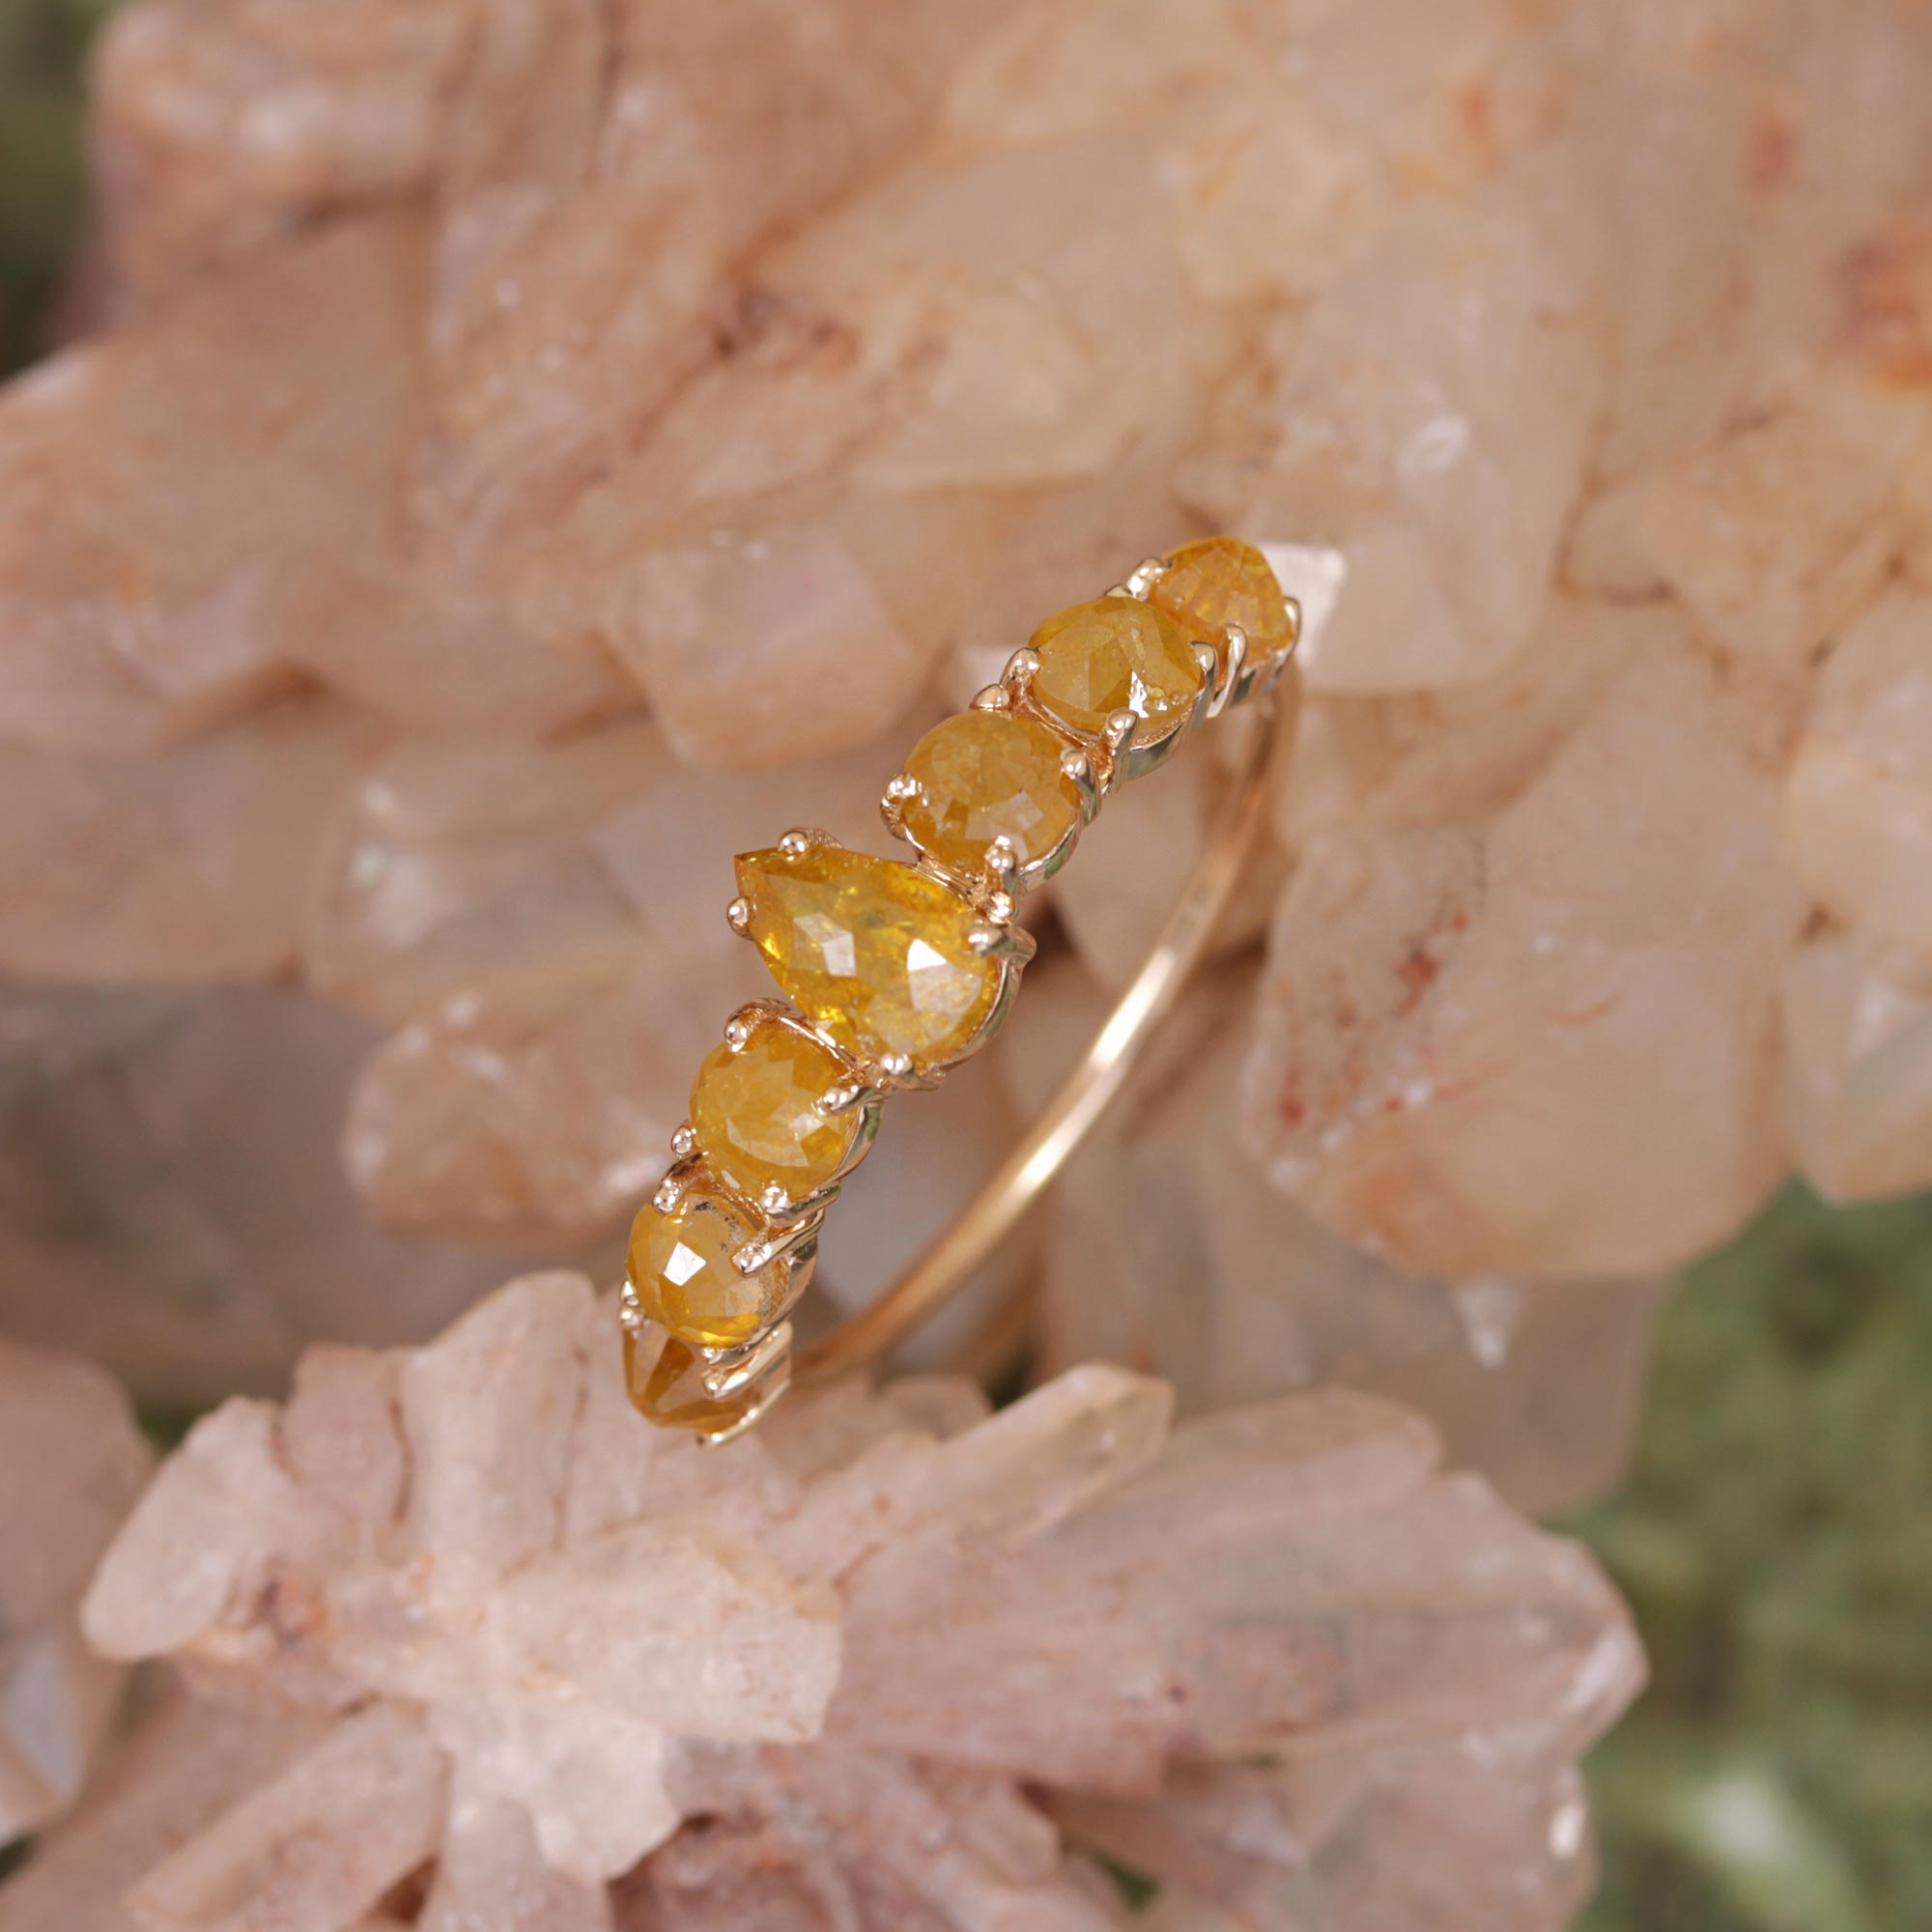 Natural Tambuly Diamond Ring 14K Solid Yellow Gold Jewelry